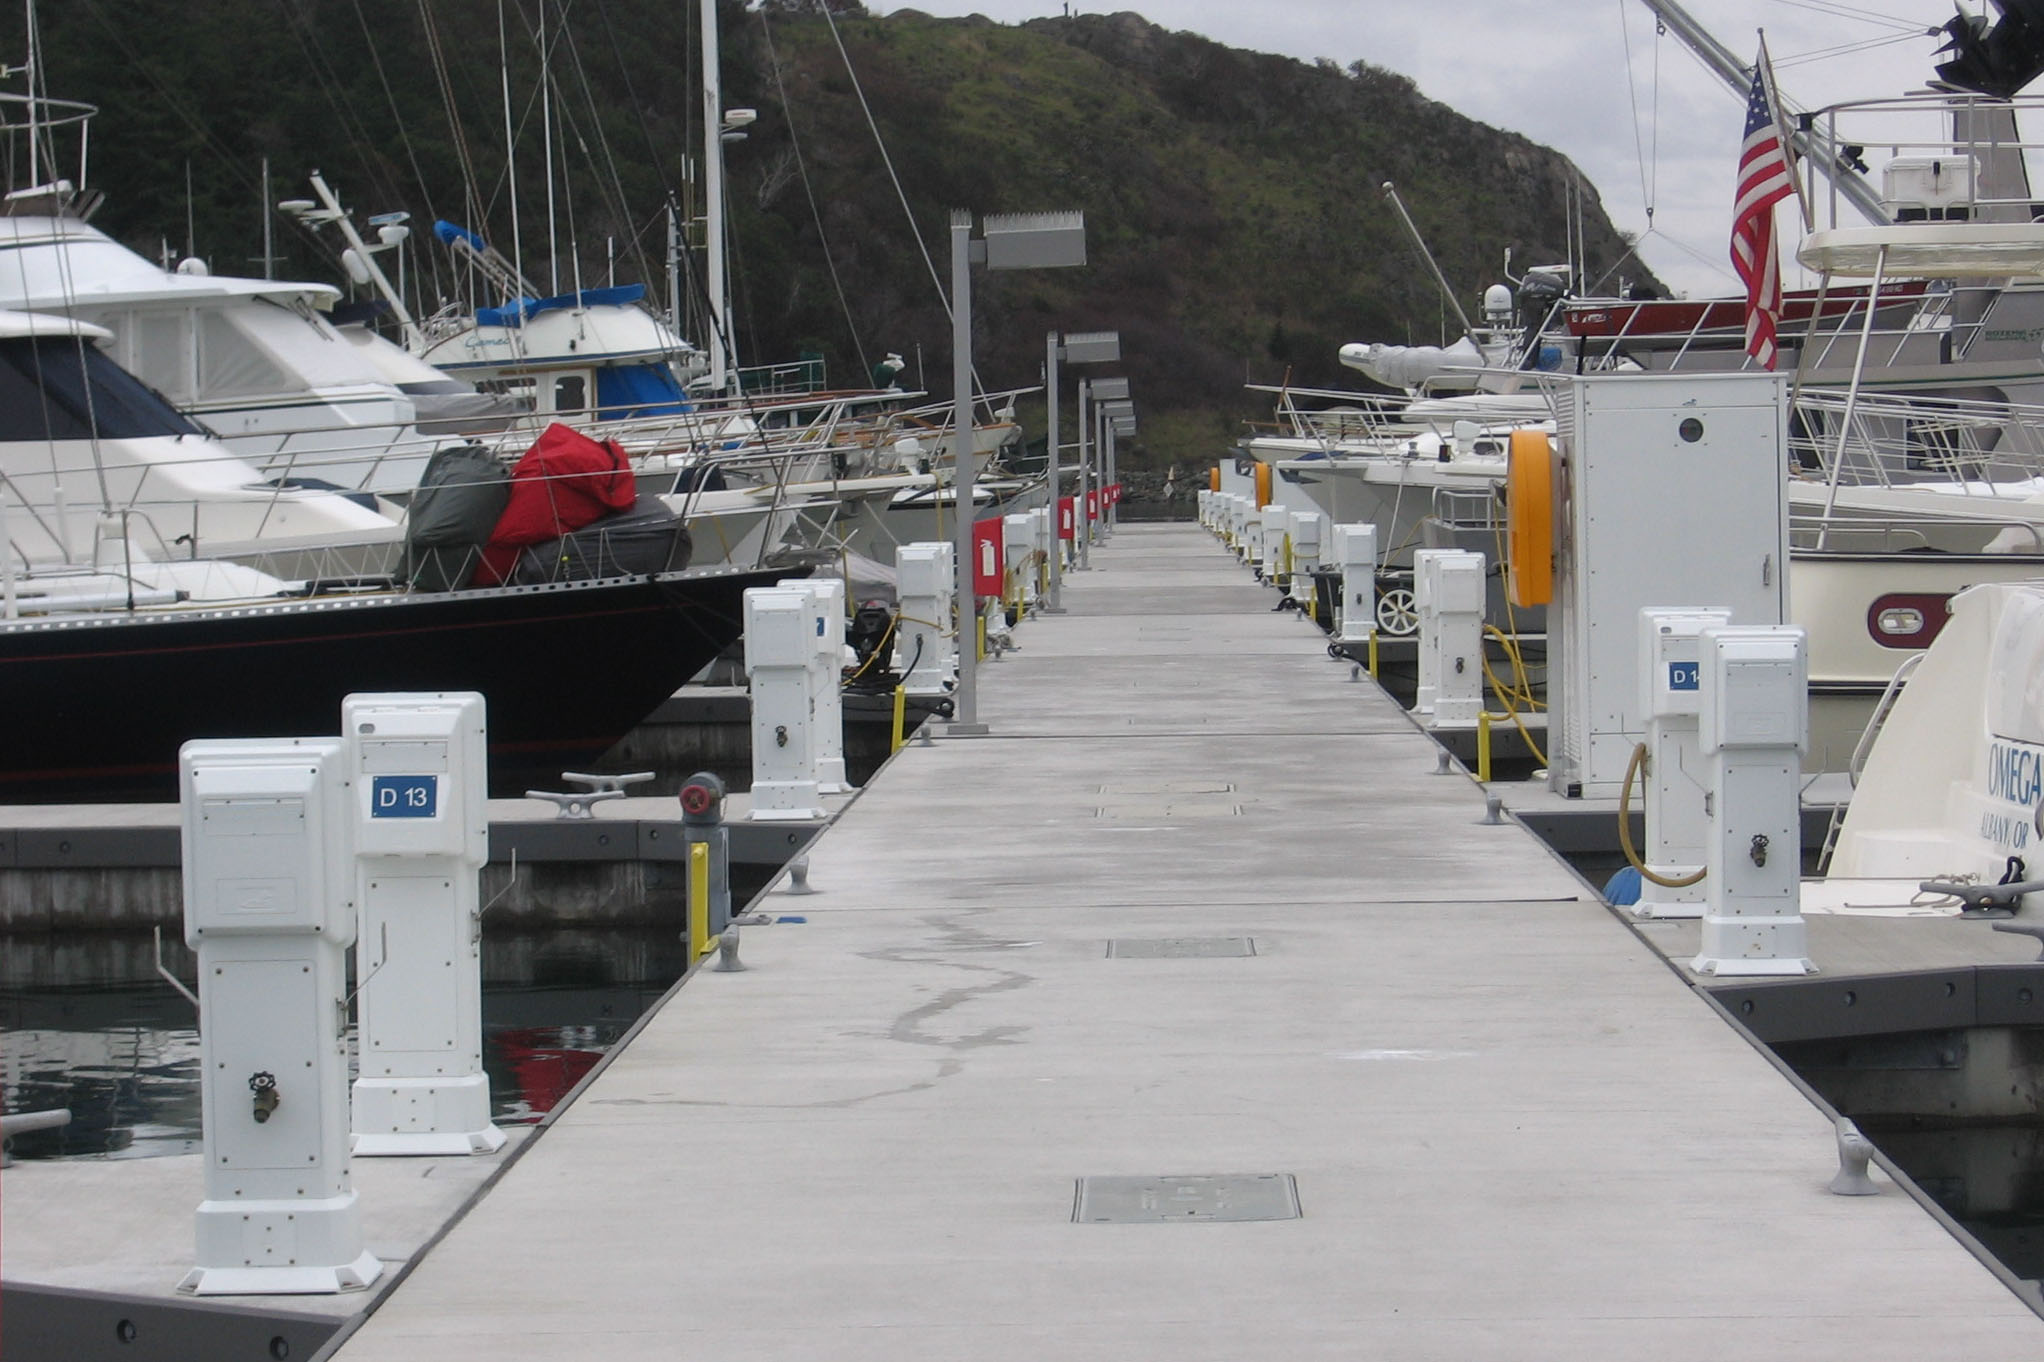 Unibolt – concrete dock with a bolted connection